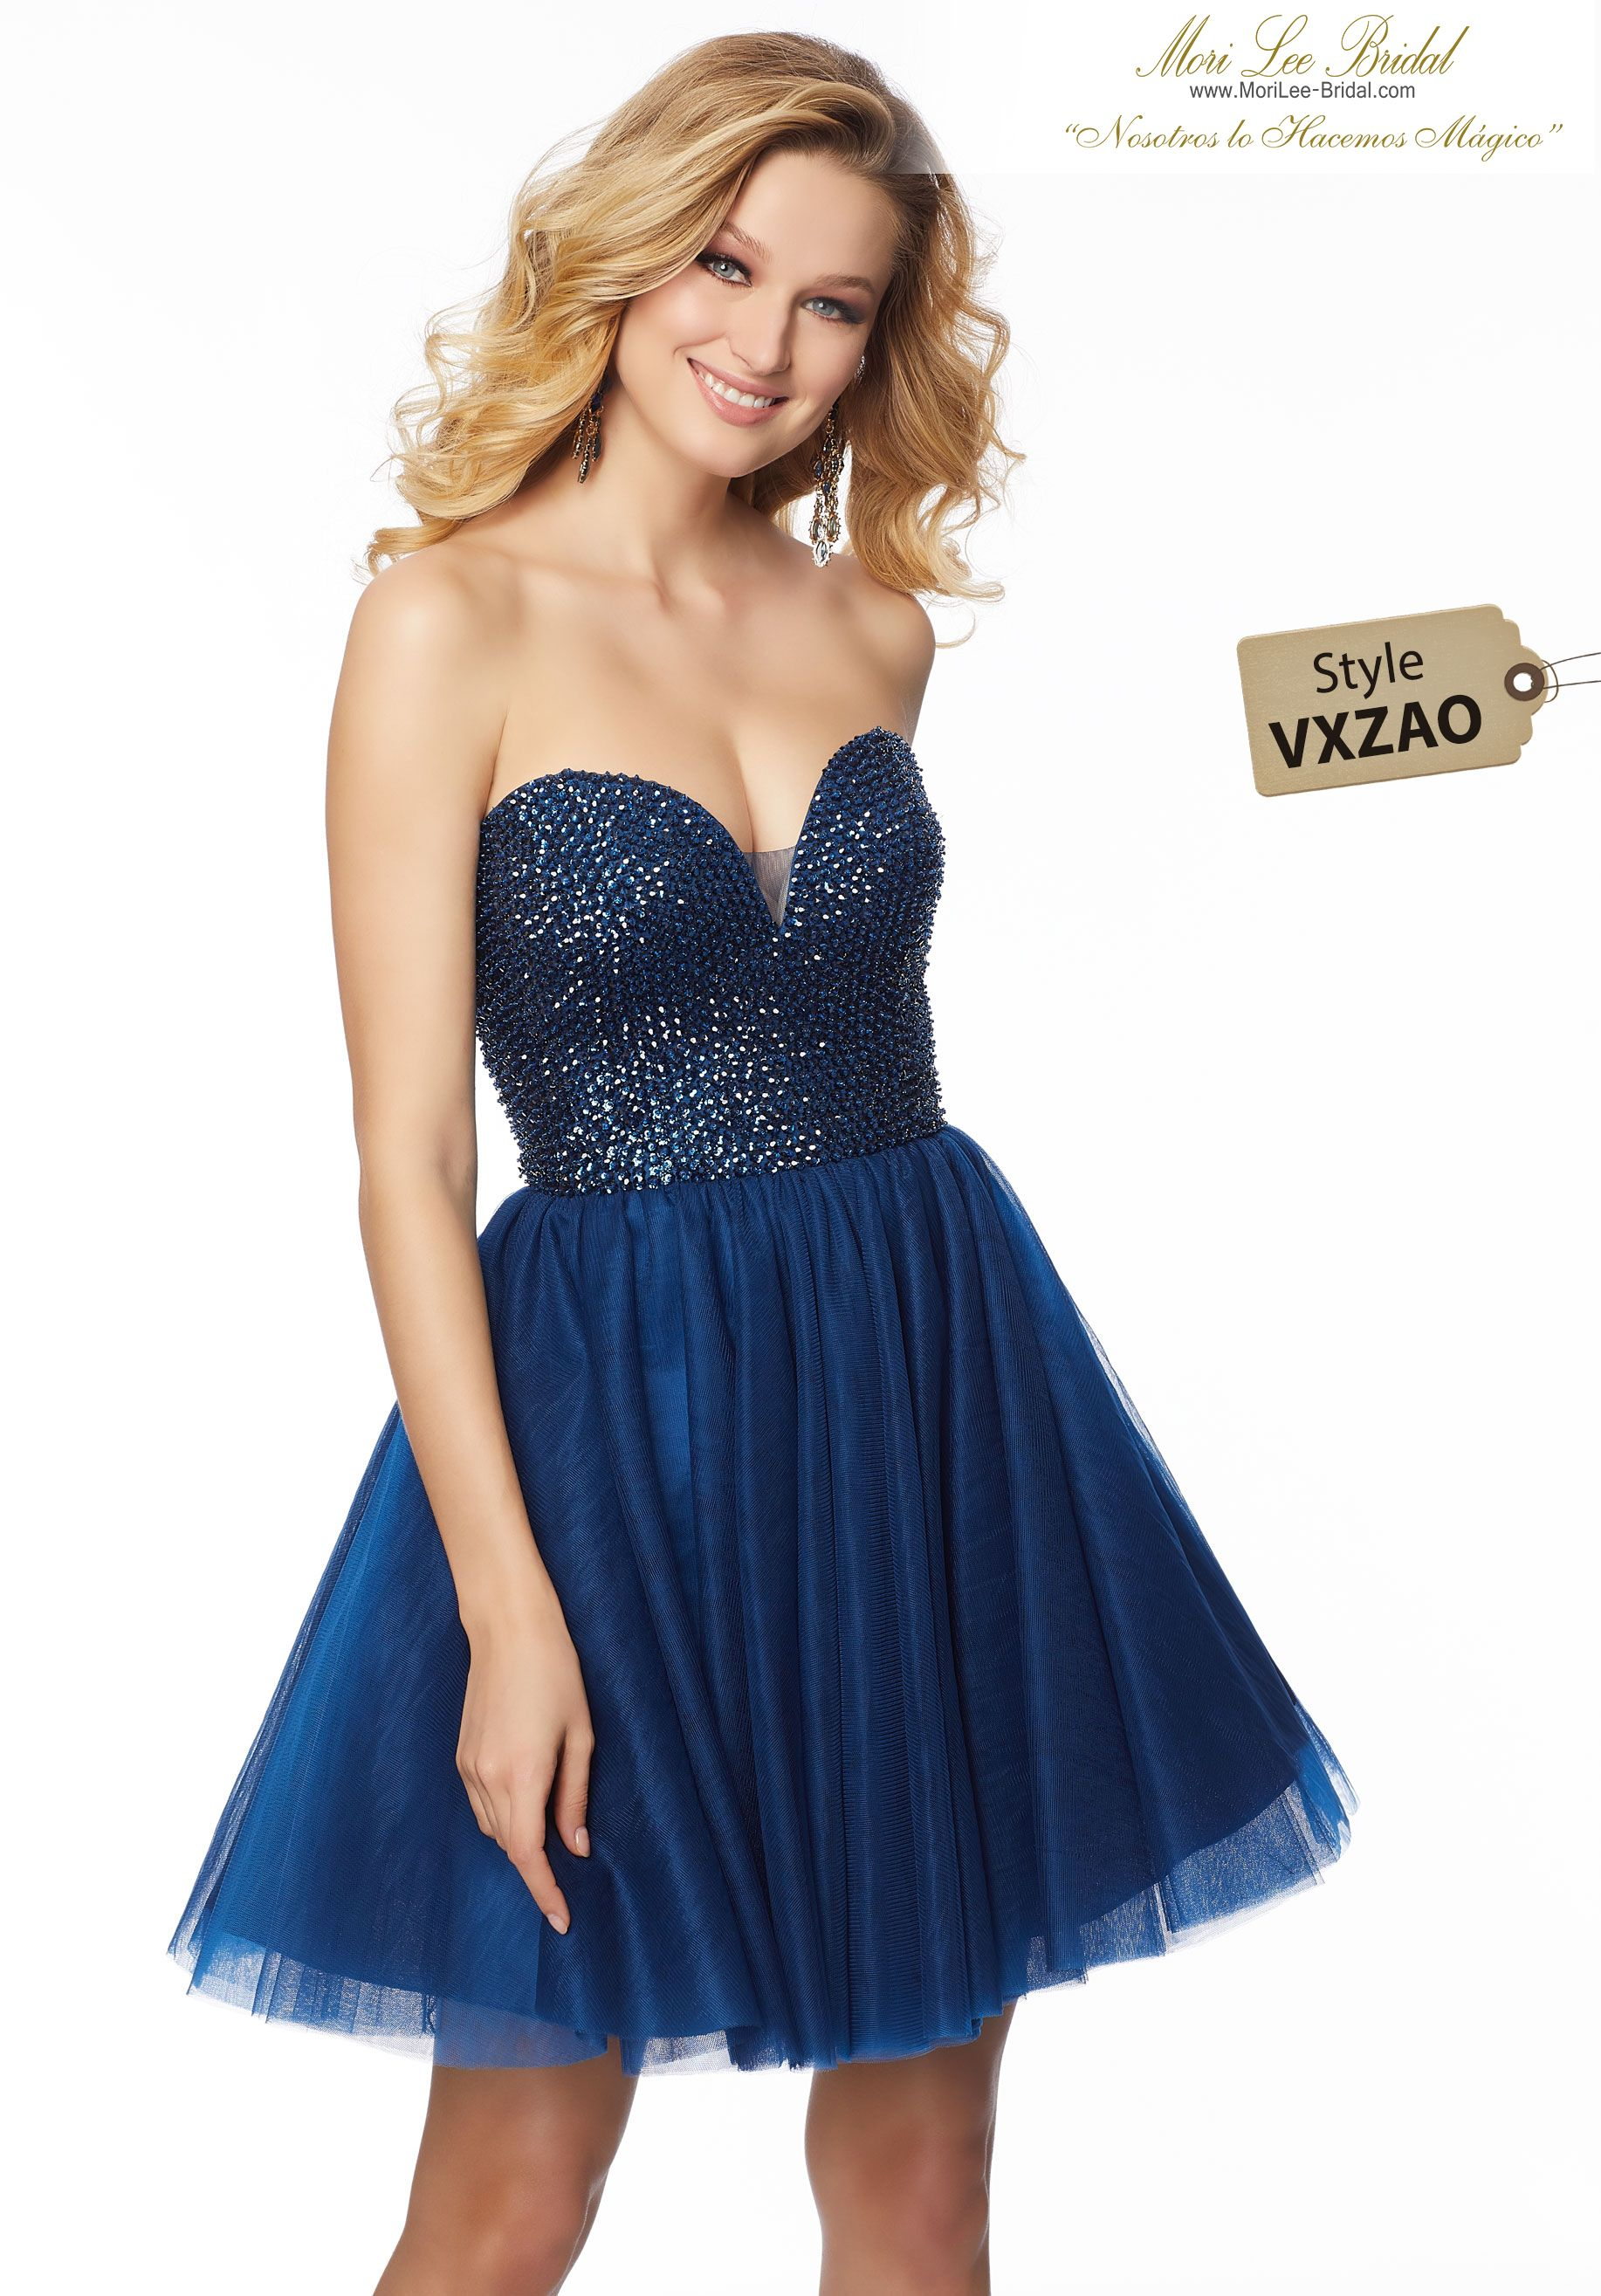 220124af40 Soft Net Party Dress with Beaded Bodice Soft Net Party Dress with Beaded  Bodice 33052 Mori